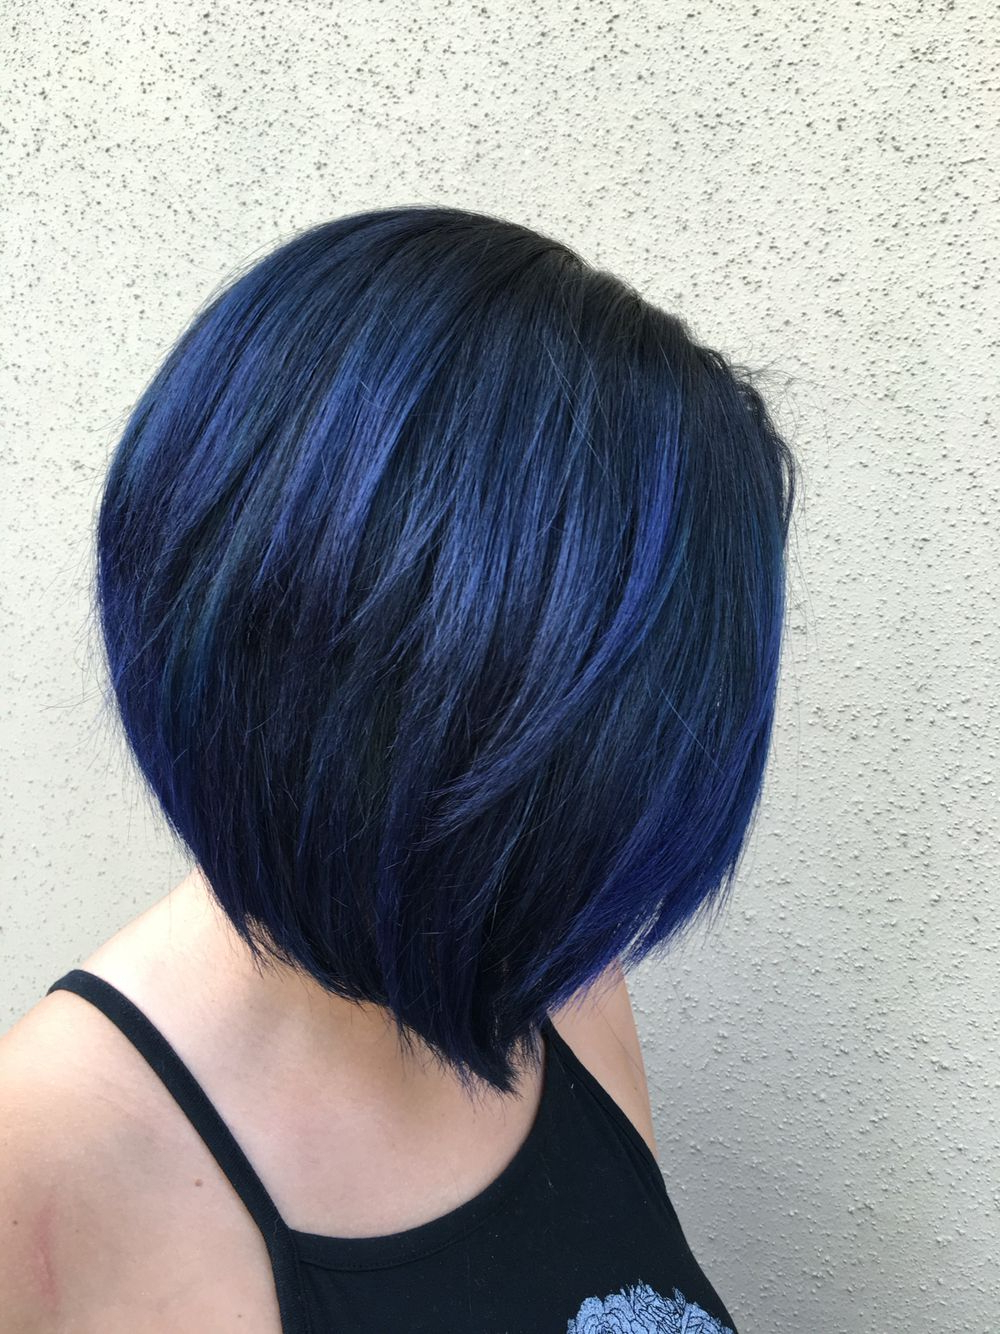 Pinvictoriakenny On Short Hairstyles In 2018 | Pinterest | Hair With Regard To Black Bob Short Hairstyles (View 16 of 25)